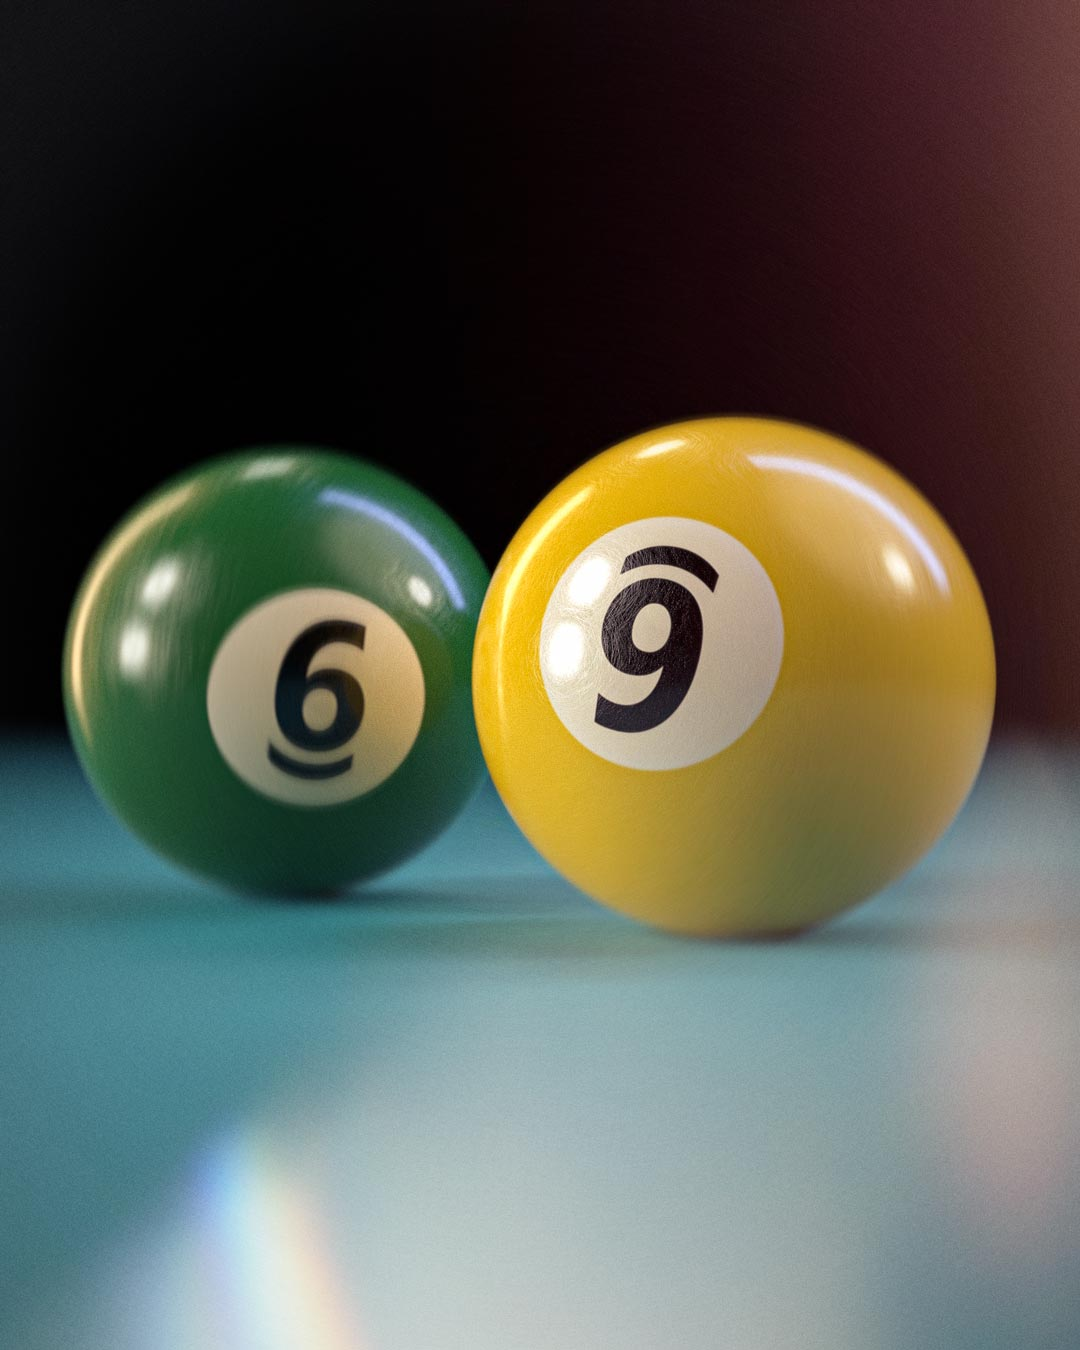 pool balls with numbers 6 and 9 side by side